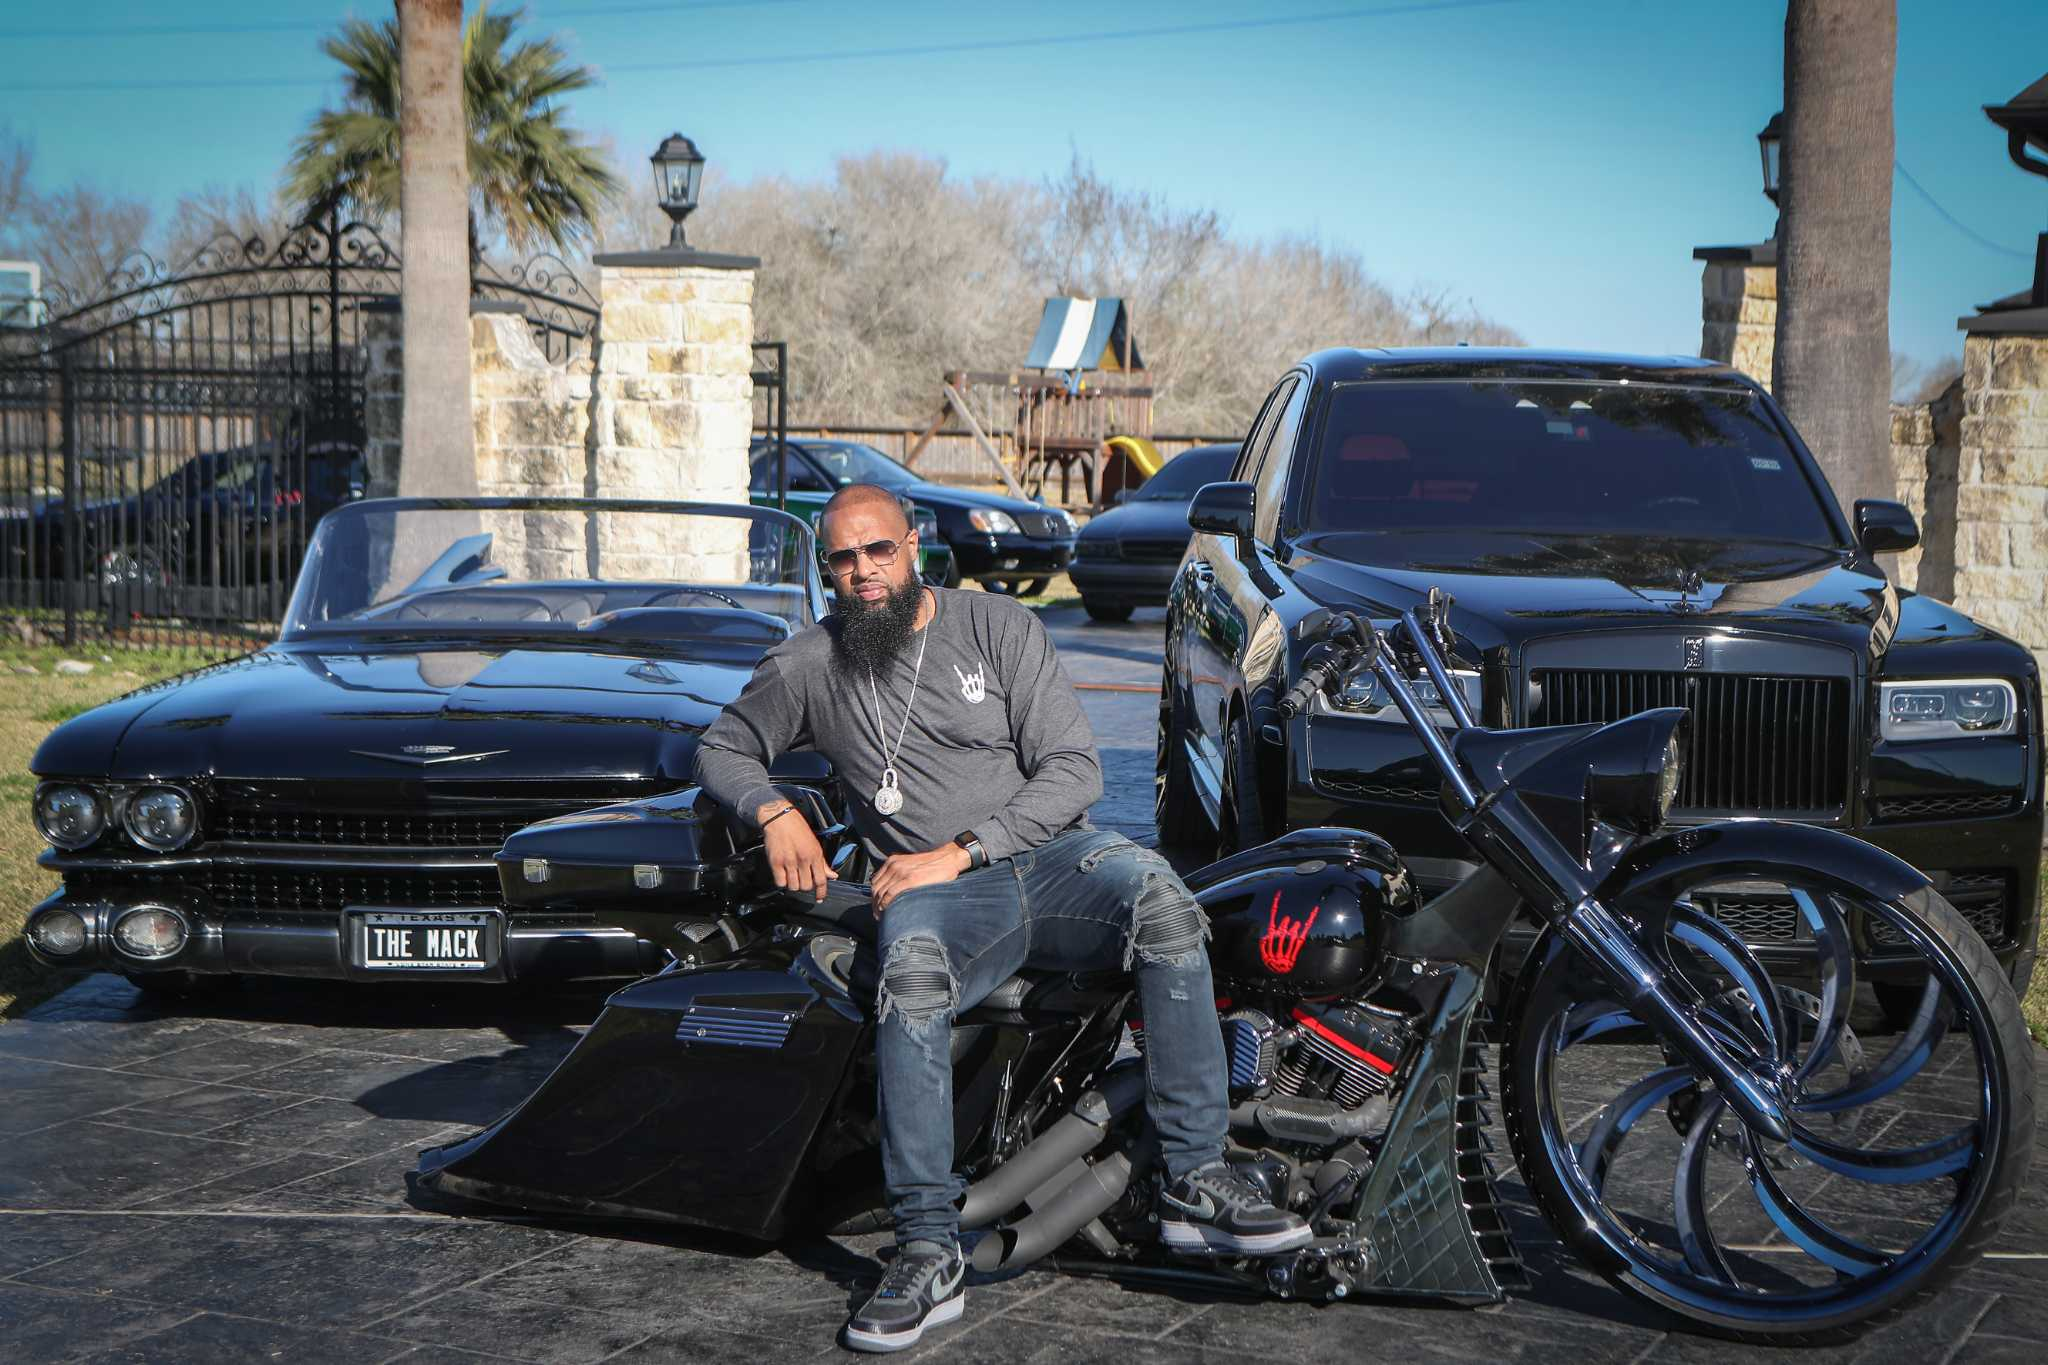 Take a look at Houston rapper Slim Thug's $1M car collection